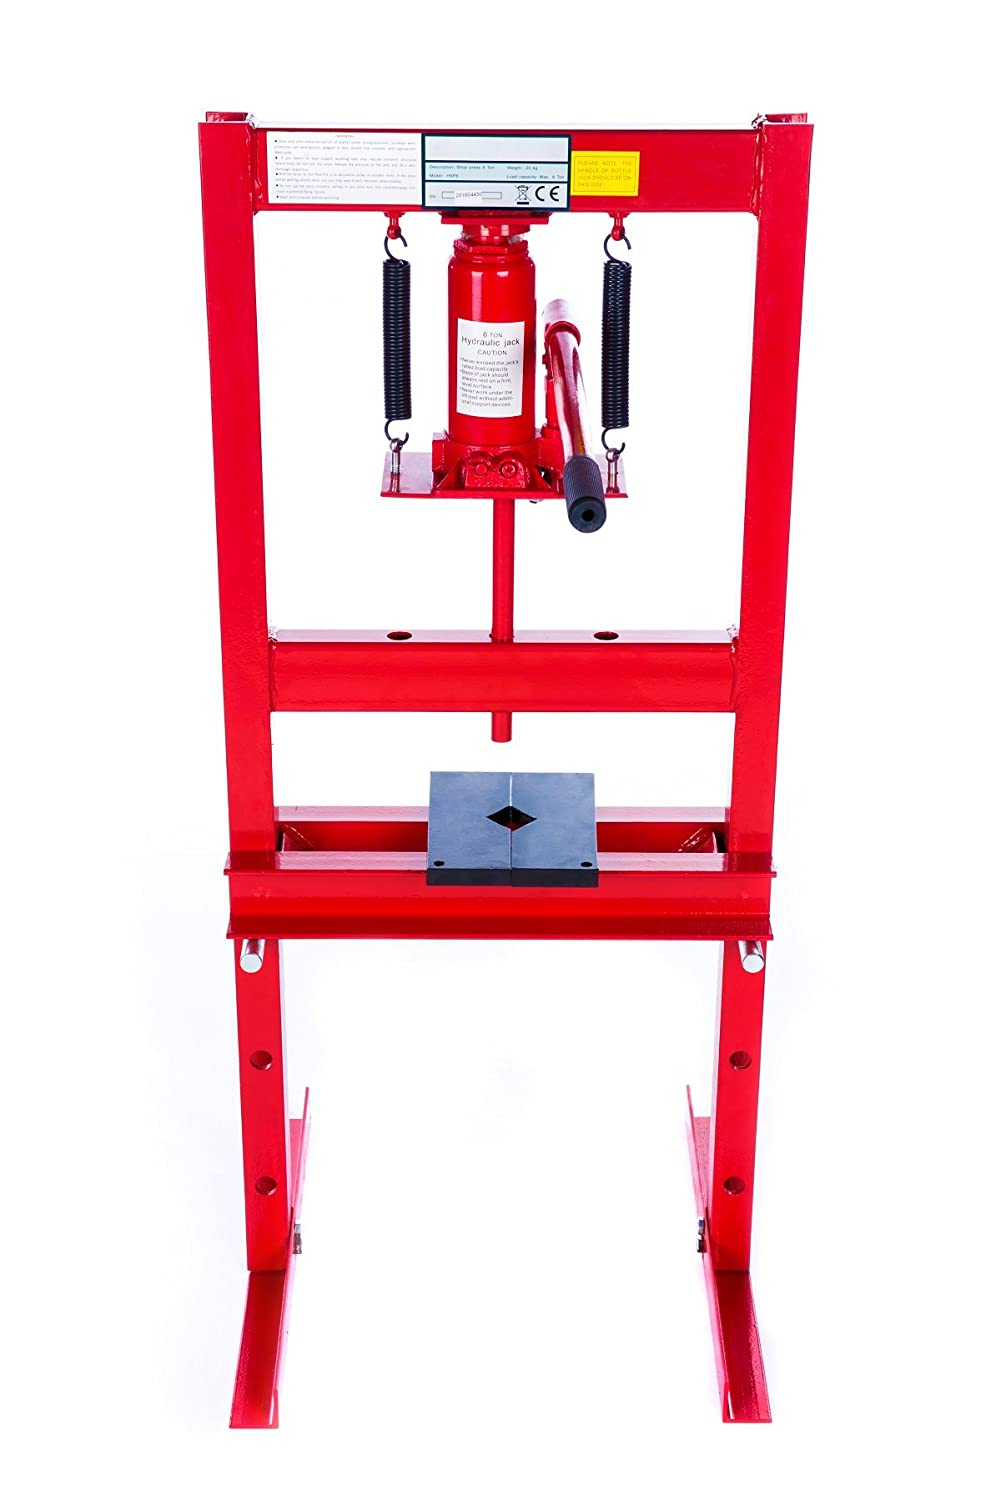 6 Ton Heavy Duty Hydraulic Workshop Garage Shop Standing Press Trad4u